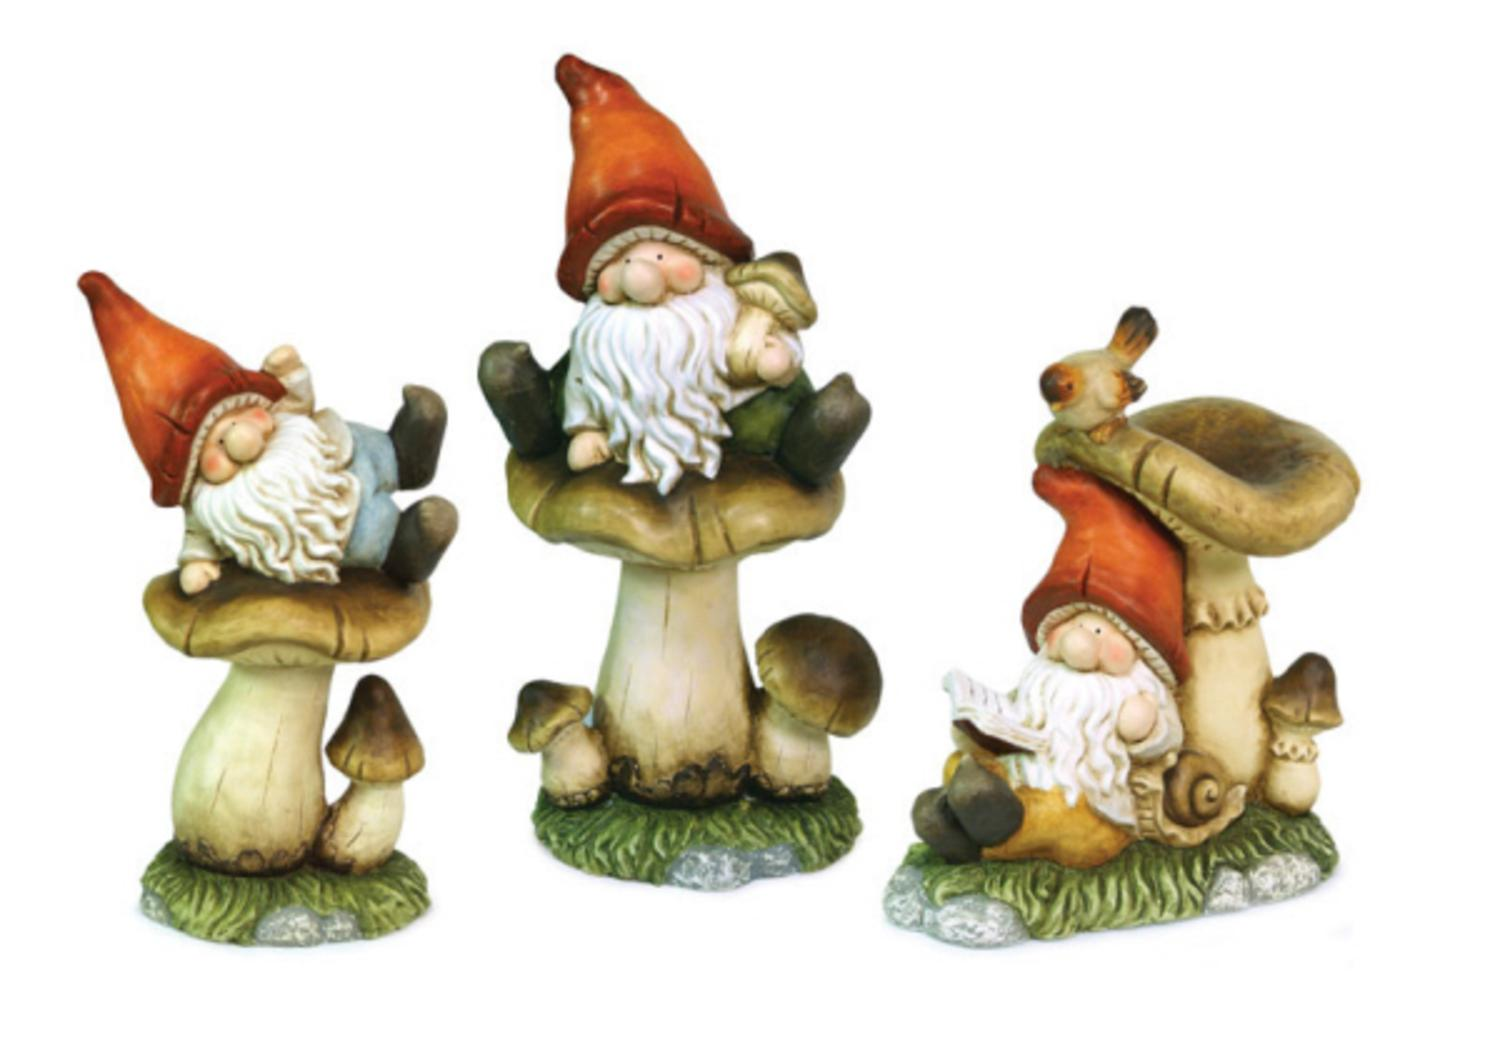 Set of 3 Meadow's Dream Whimsical Garden Gnomes with Mushrooms Outdoor Statues by Melrose